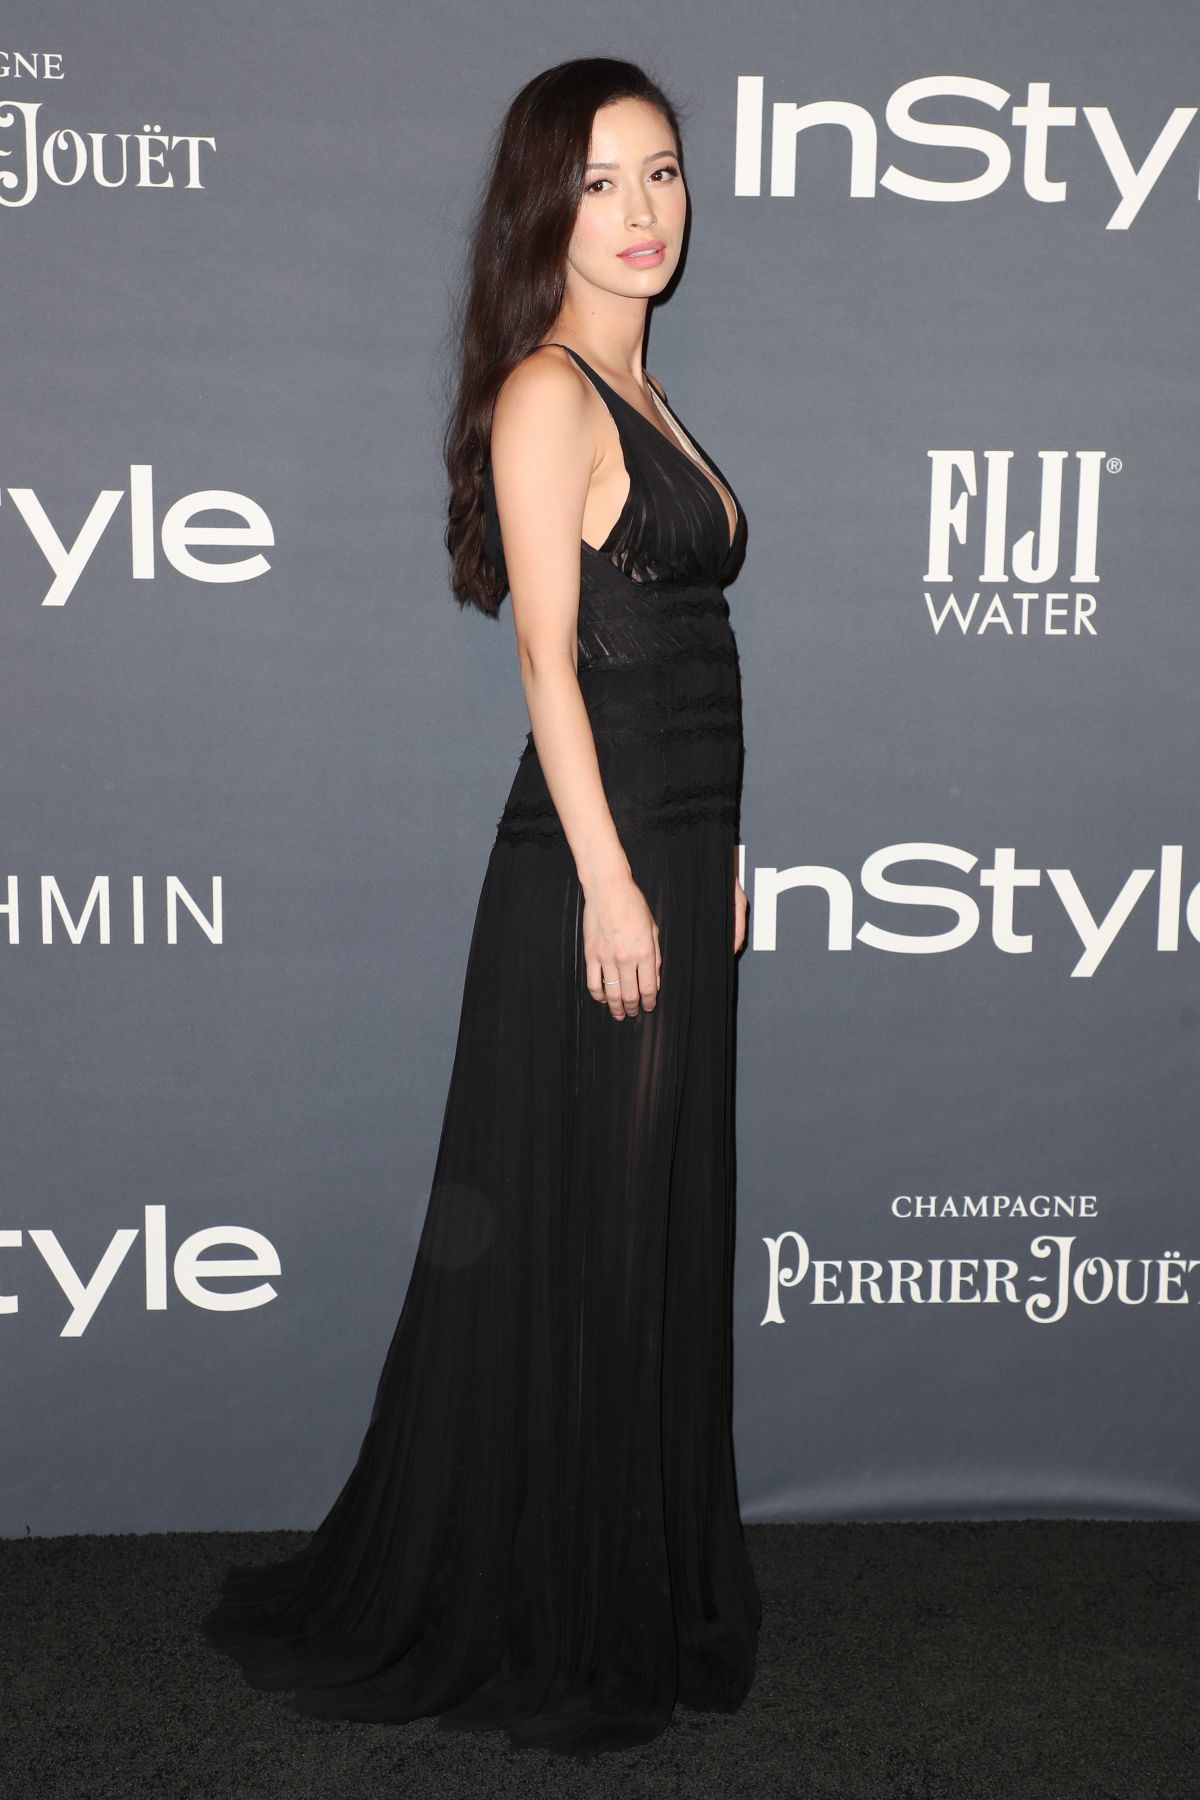 Christian Serratos At 3rd Annual InStyle Awards in Los Angeles